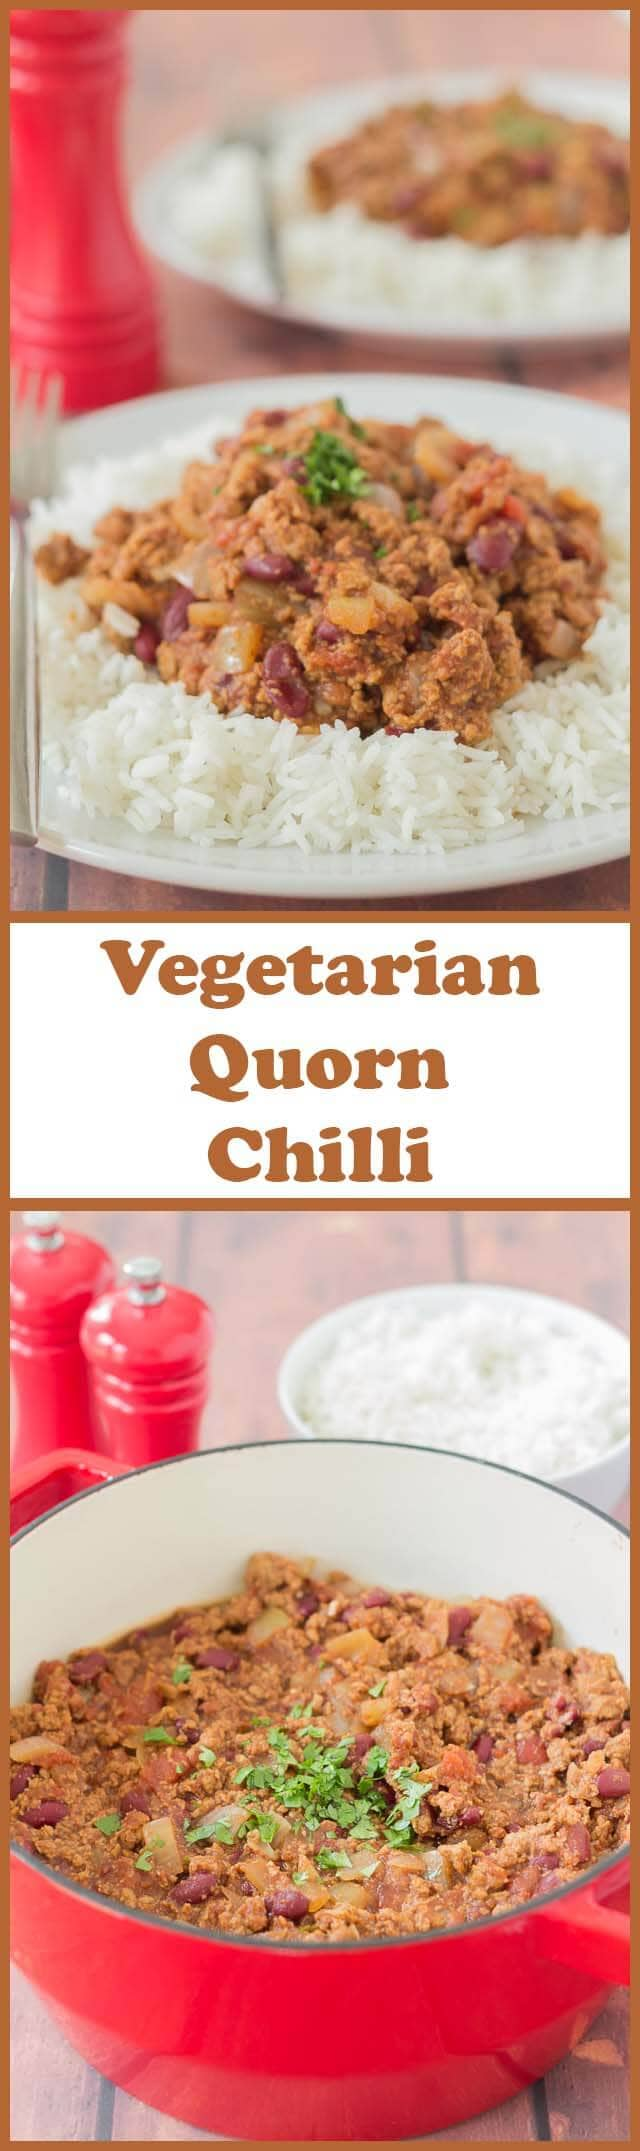 Quorn chilli is a delicious alternative to beef chilli. I've made this tasty vegetarian family Quorn chilli recipe for many years now. This recipe is versatile in that you can also make it with beef if you're a meat eater, or can't get Quorn